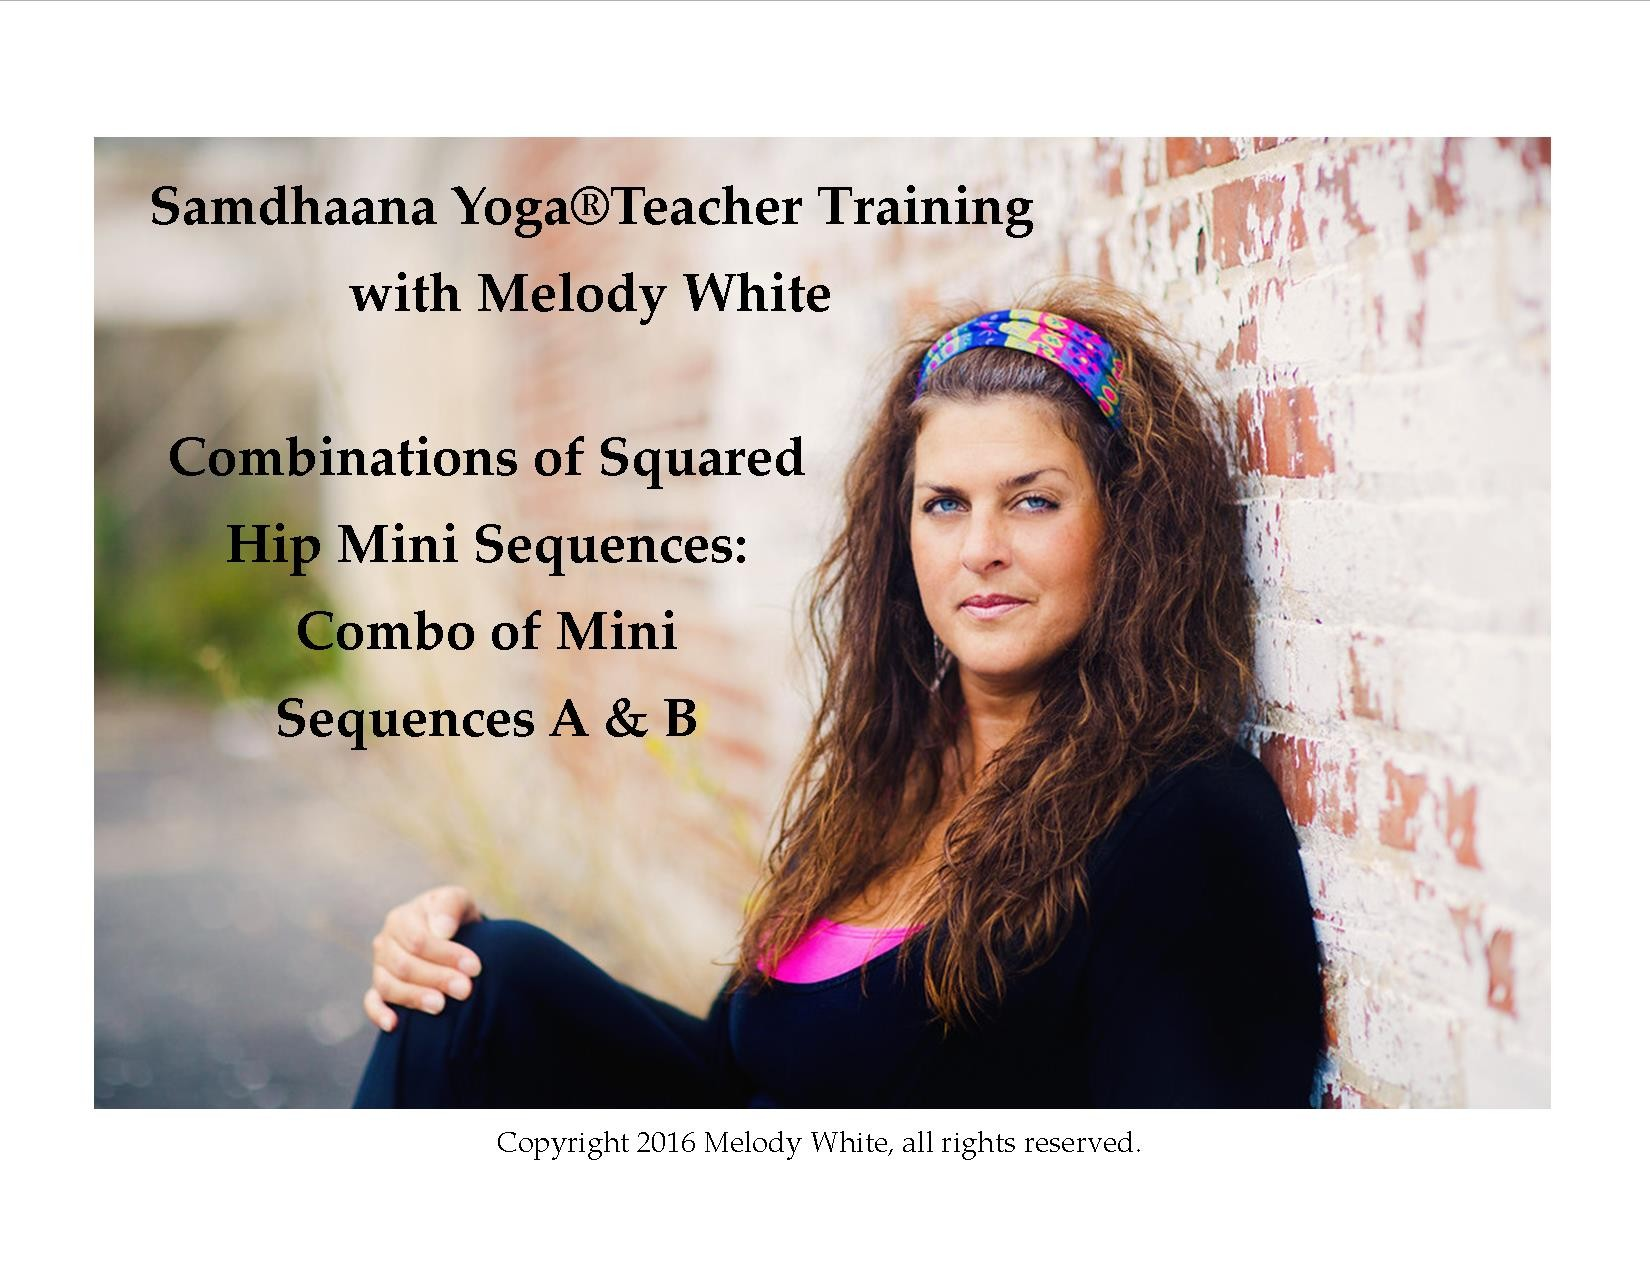 Samdhaana Yoga Squared Hip Mini Sequences